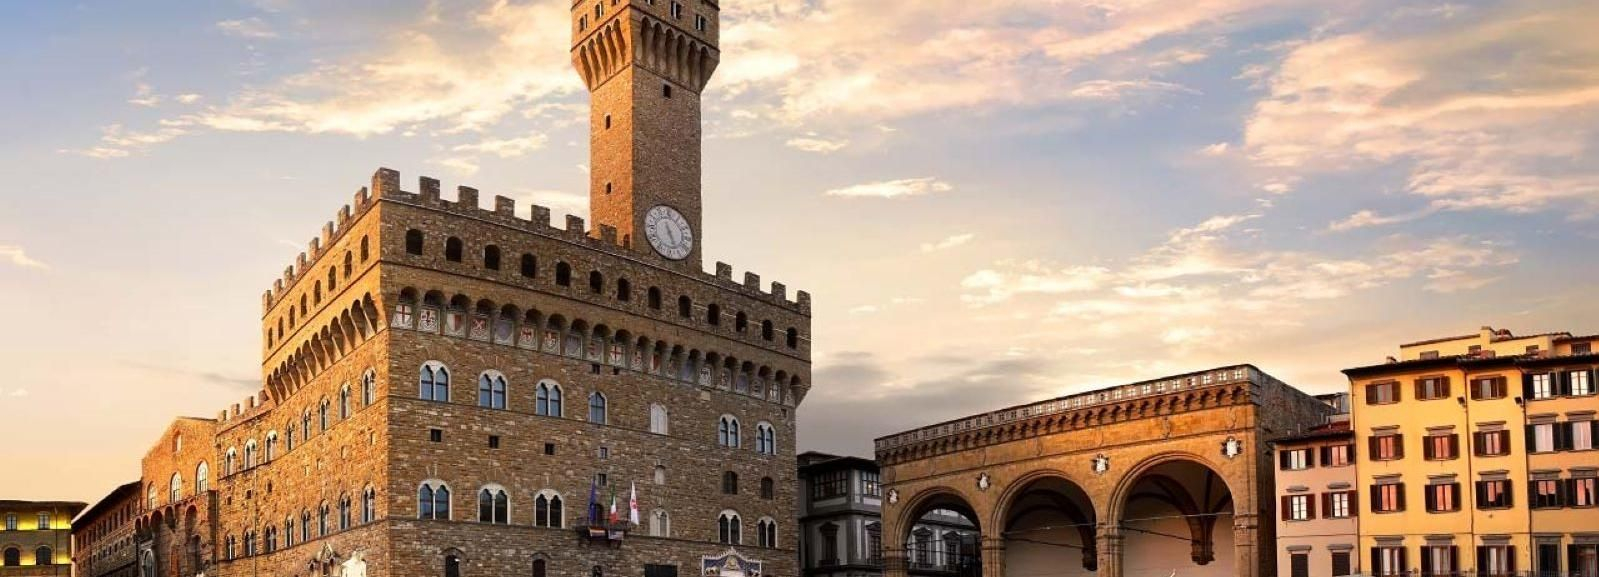 Palazzo Vecchio Entrance Ticket with Tower Access